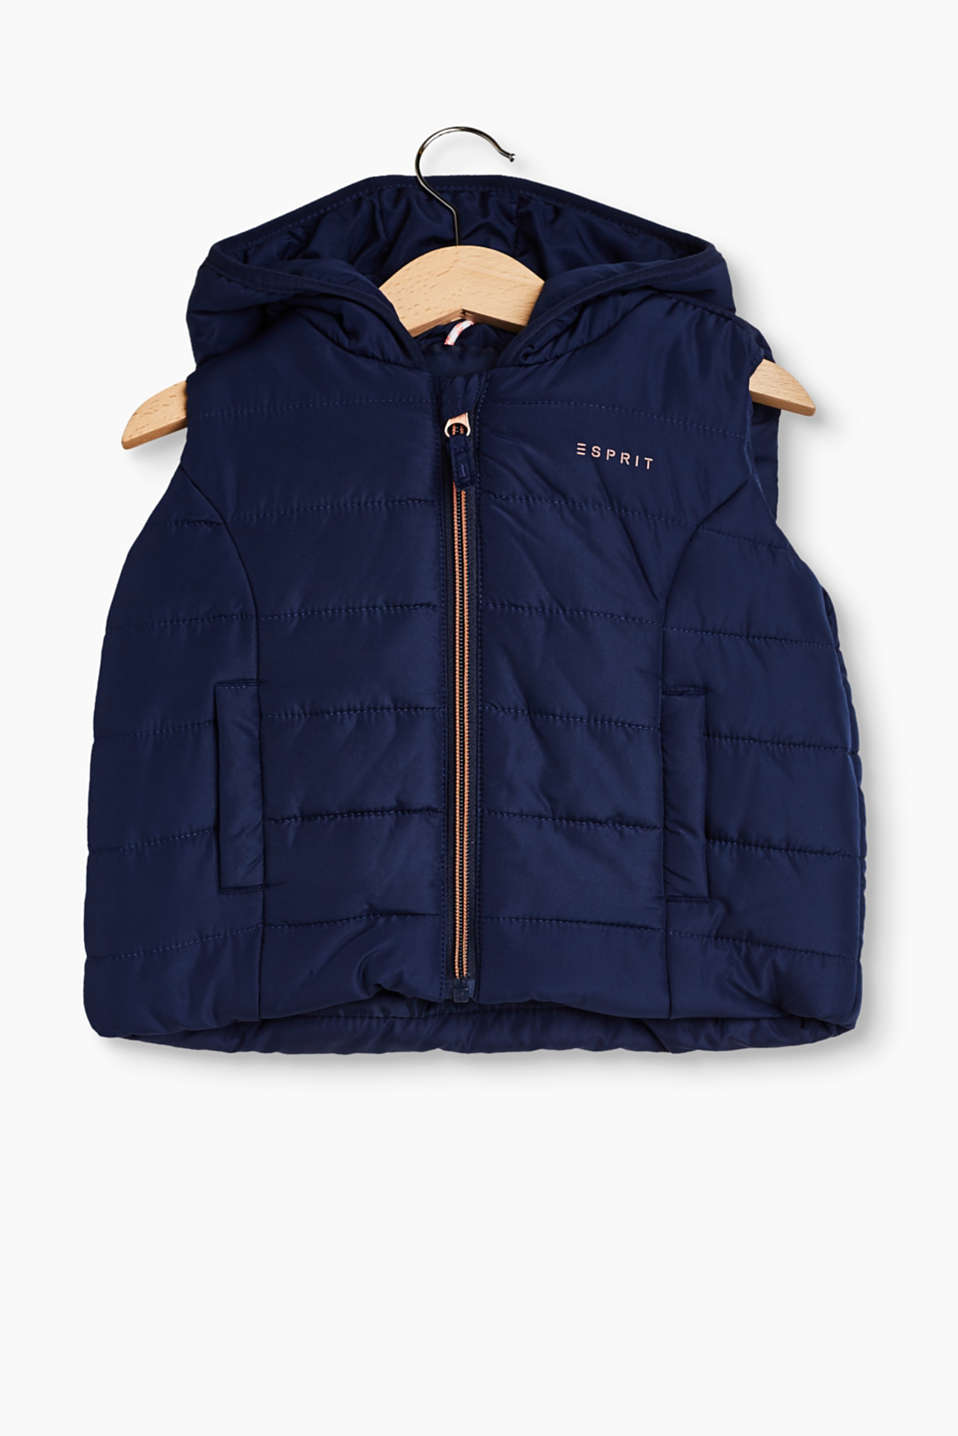 Warmly padded quilted body warmer with a hood and a colour-contrasting zip